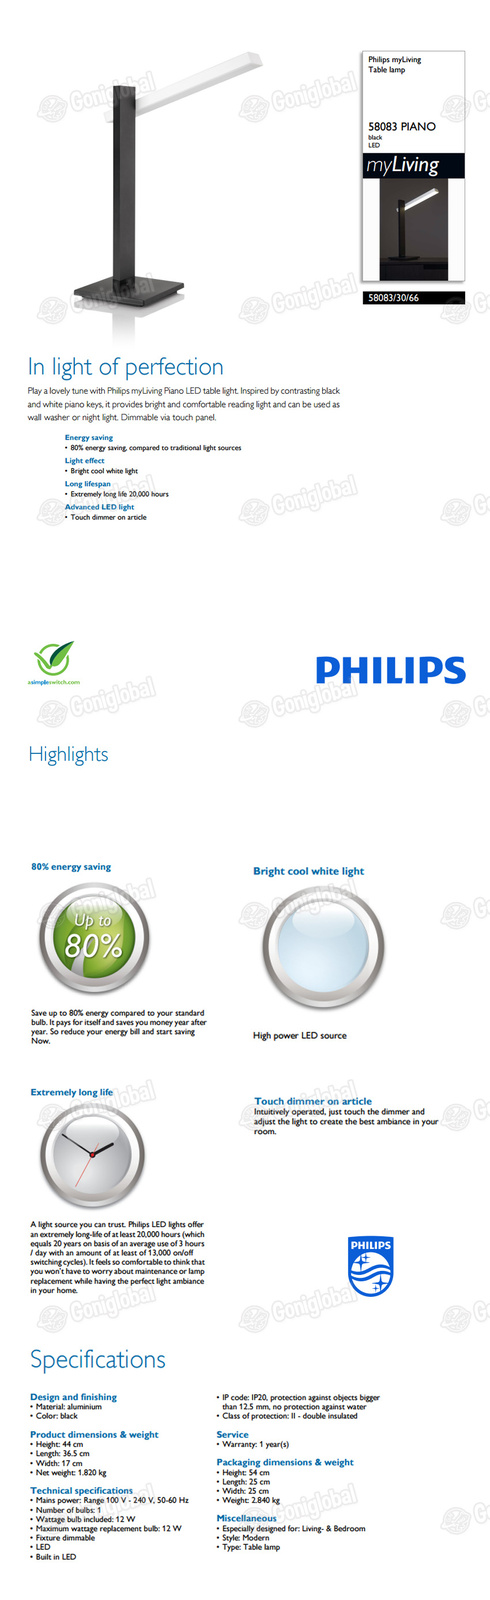 PHILIPS PHILIPS Piano Table LED Lamp 58083 / Desk Lamp / Table Light / 4 Levels